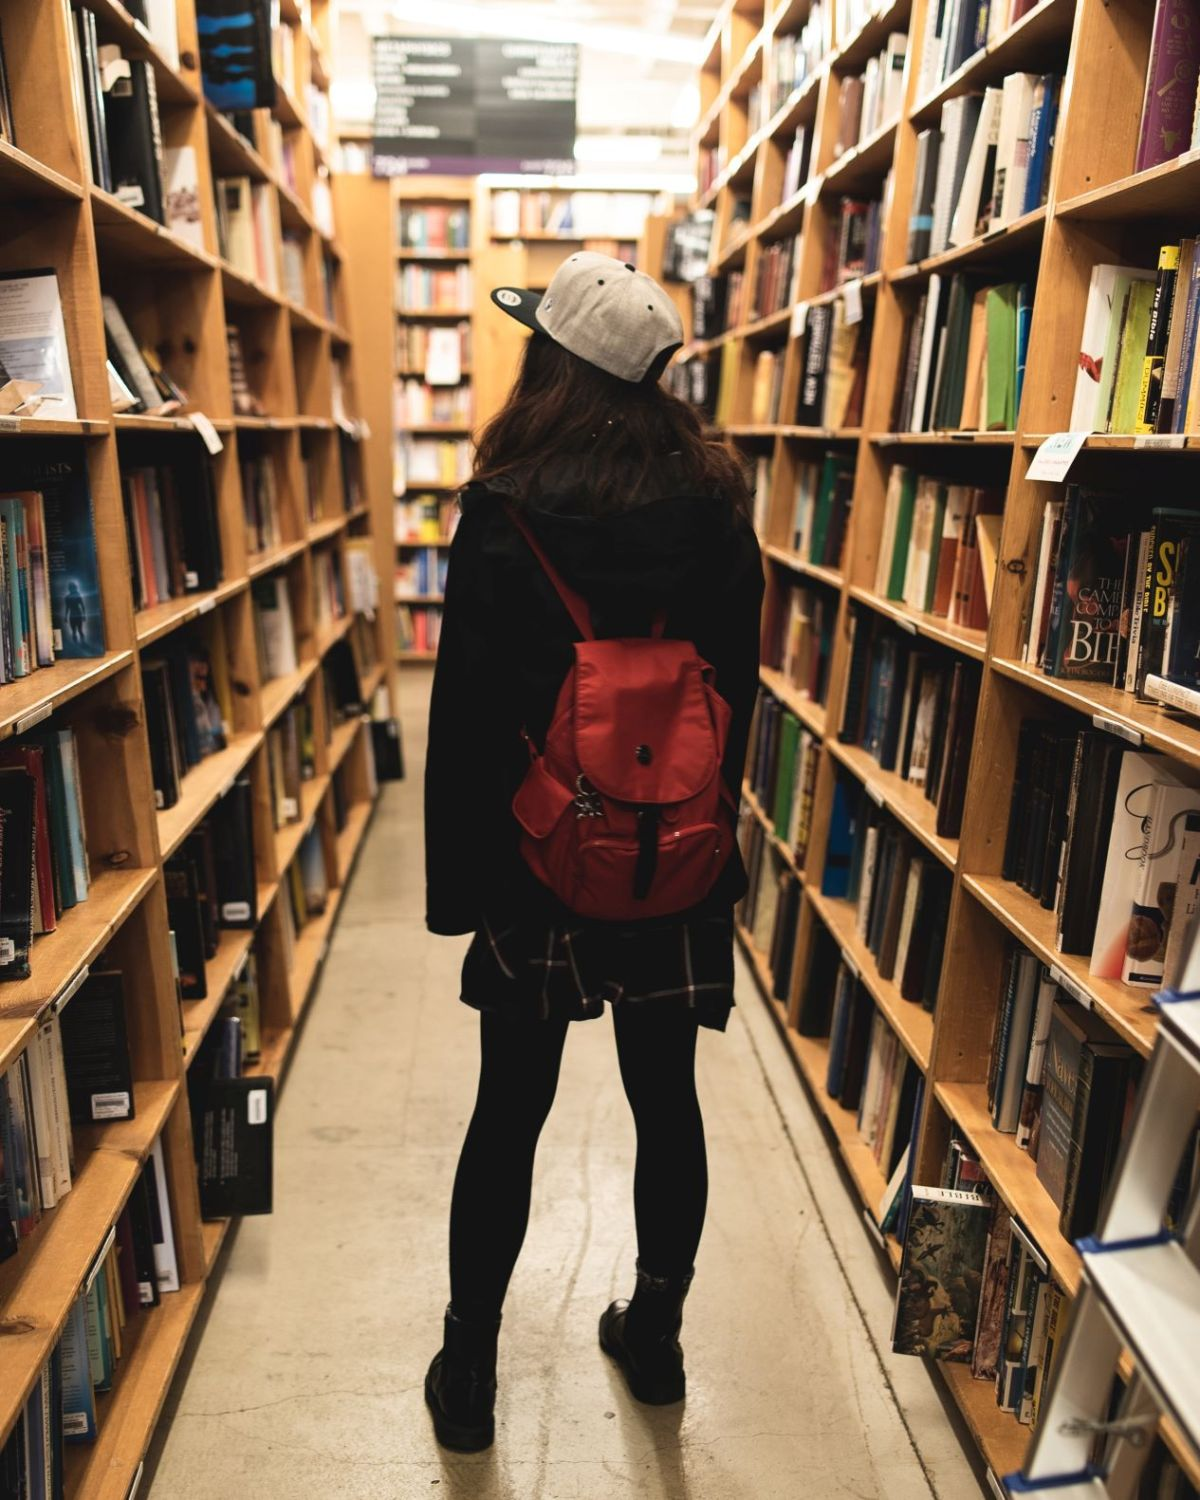 Woman in Bookstore Photo by Tyler Tang on Unsplash